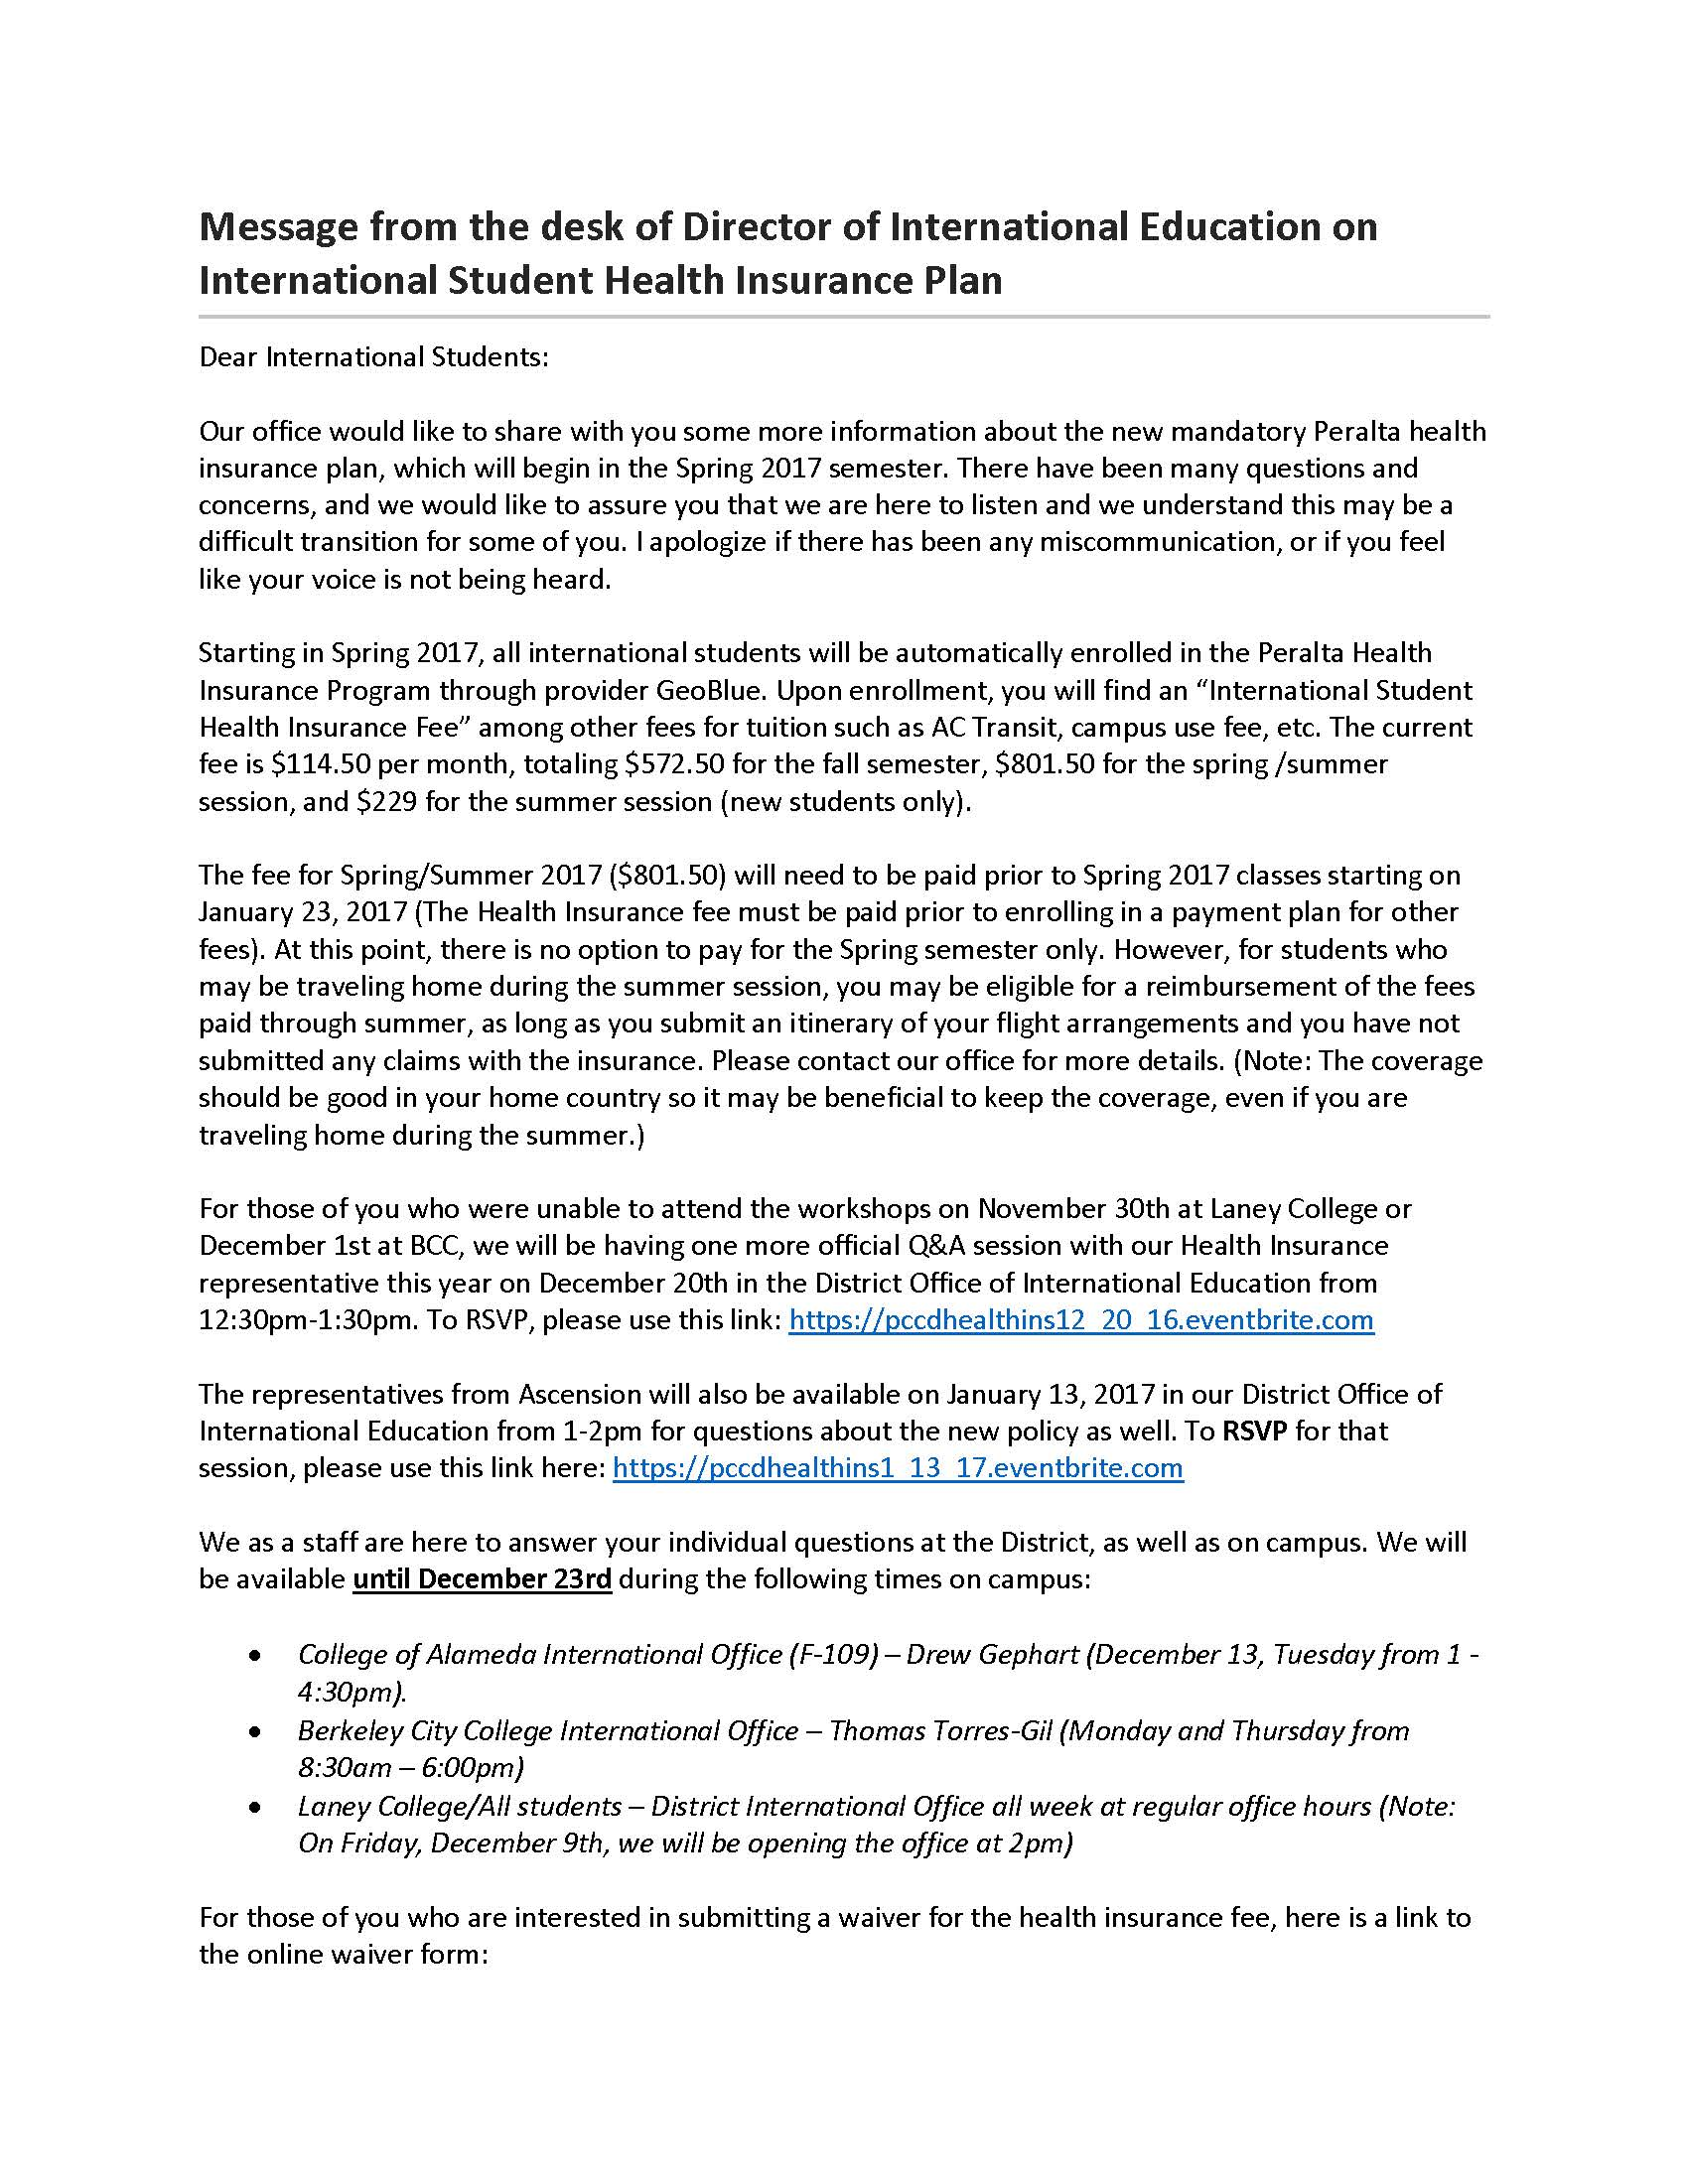 message-from-the-desk-of-director-of-international-education-on-international-student-health-insurance-plan_rr_page_1